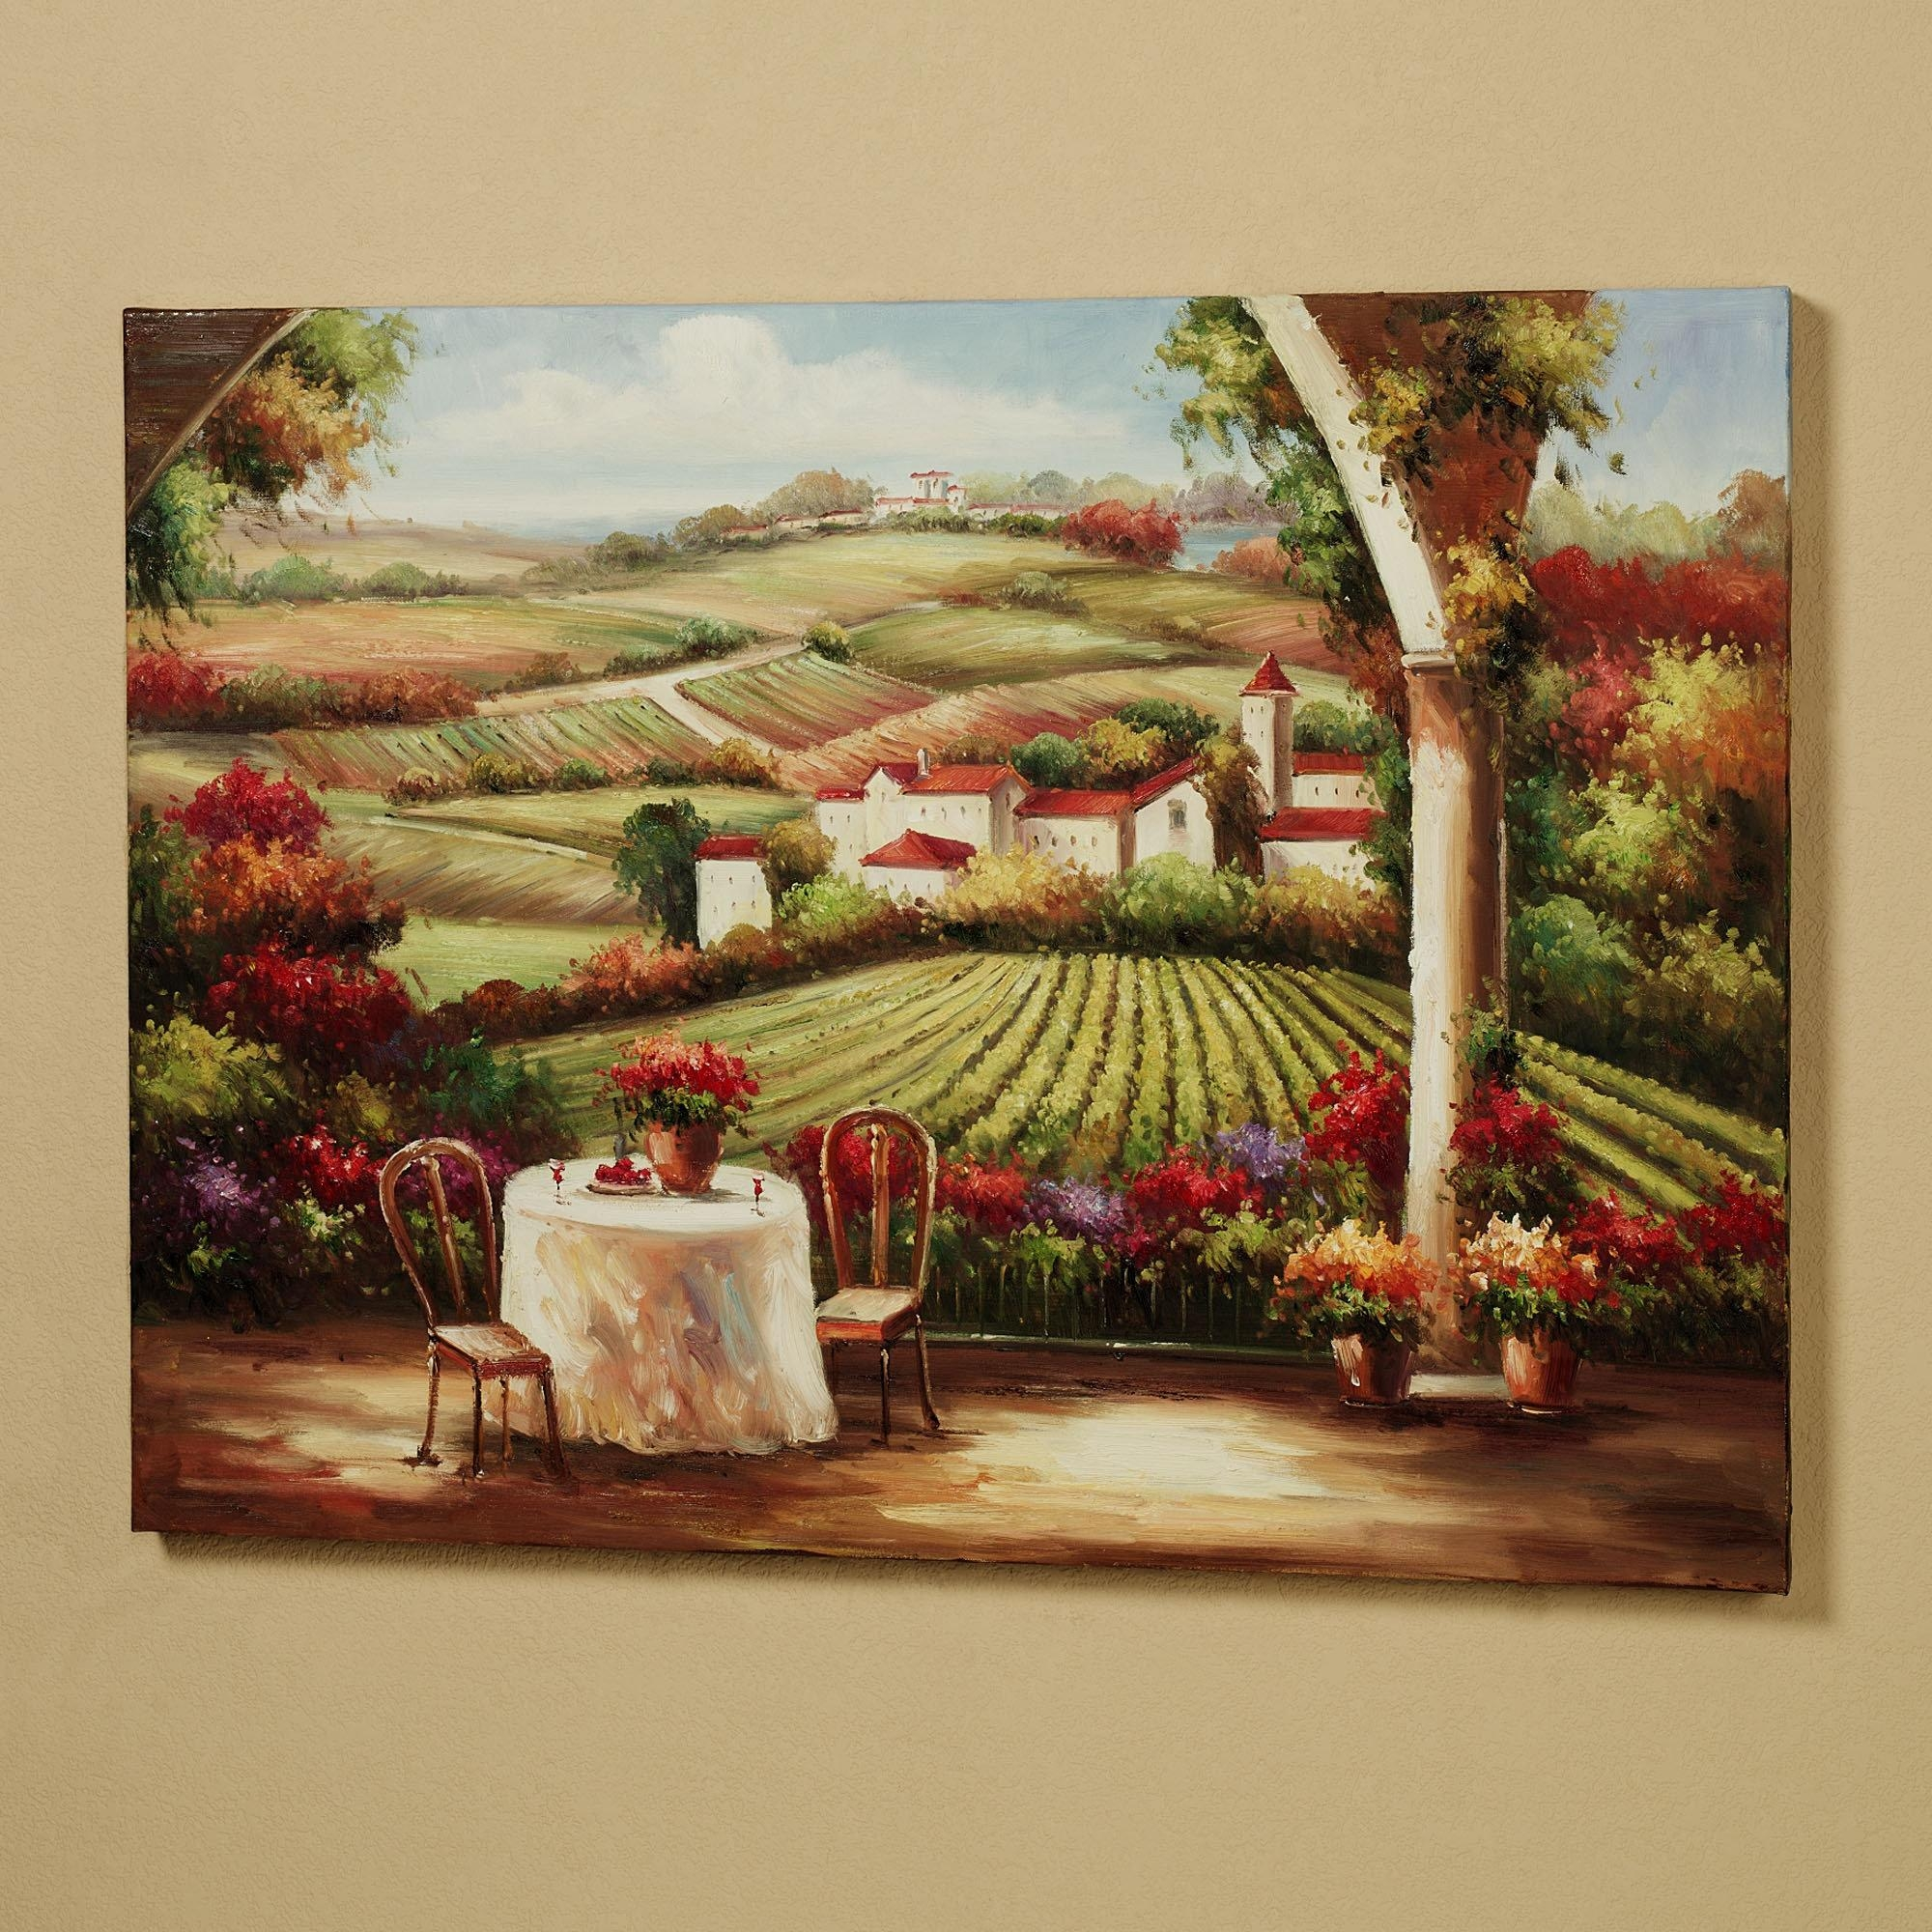 Wall Art Designs: Terrific Vineyard Wall Art Wine Decor Kitchen With Contemporary Italian Wall Art (View 14 of 20)